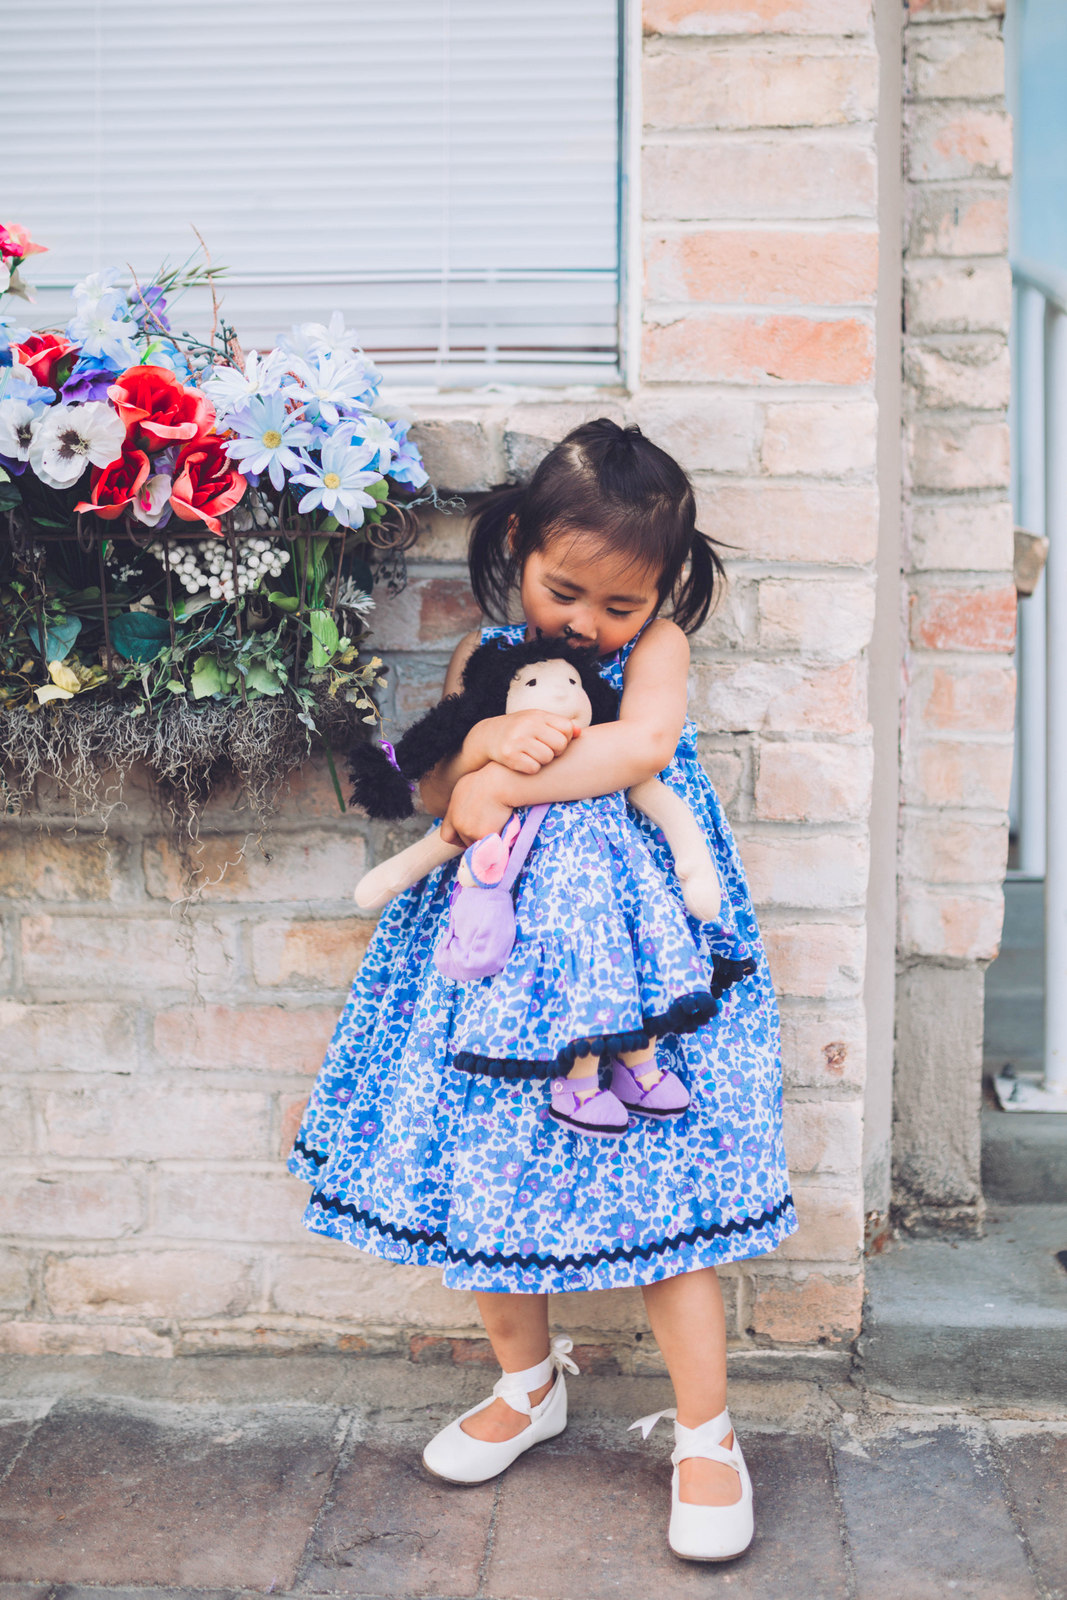 f00c6b0c8f Now if there is one thing that MIGHT be cuter than Mommy and me matching…  it quite possibly could be matching girl and doll outfits, what do you  think??